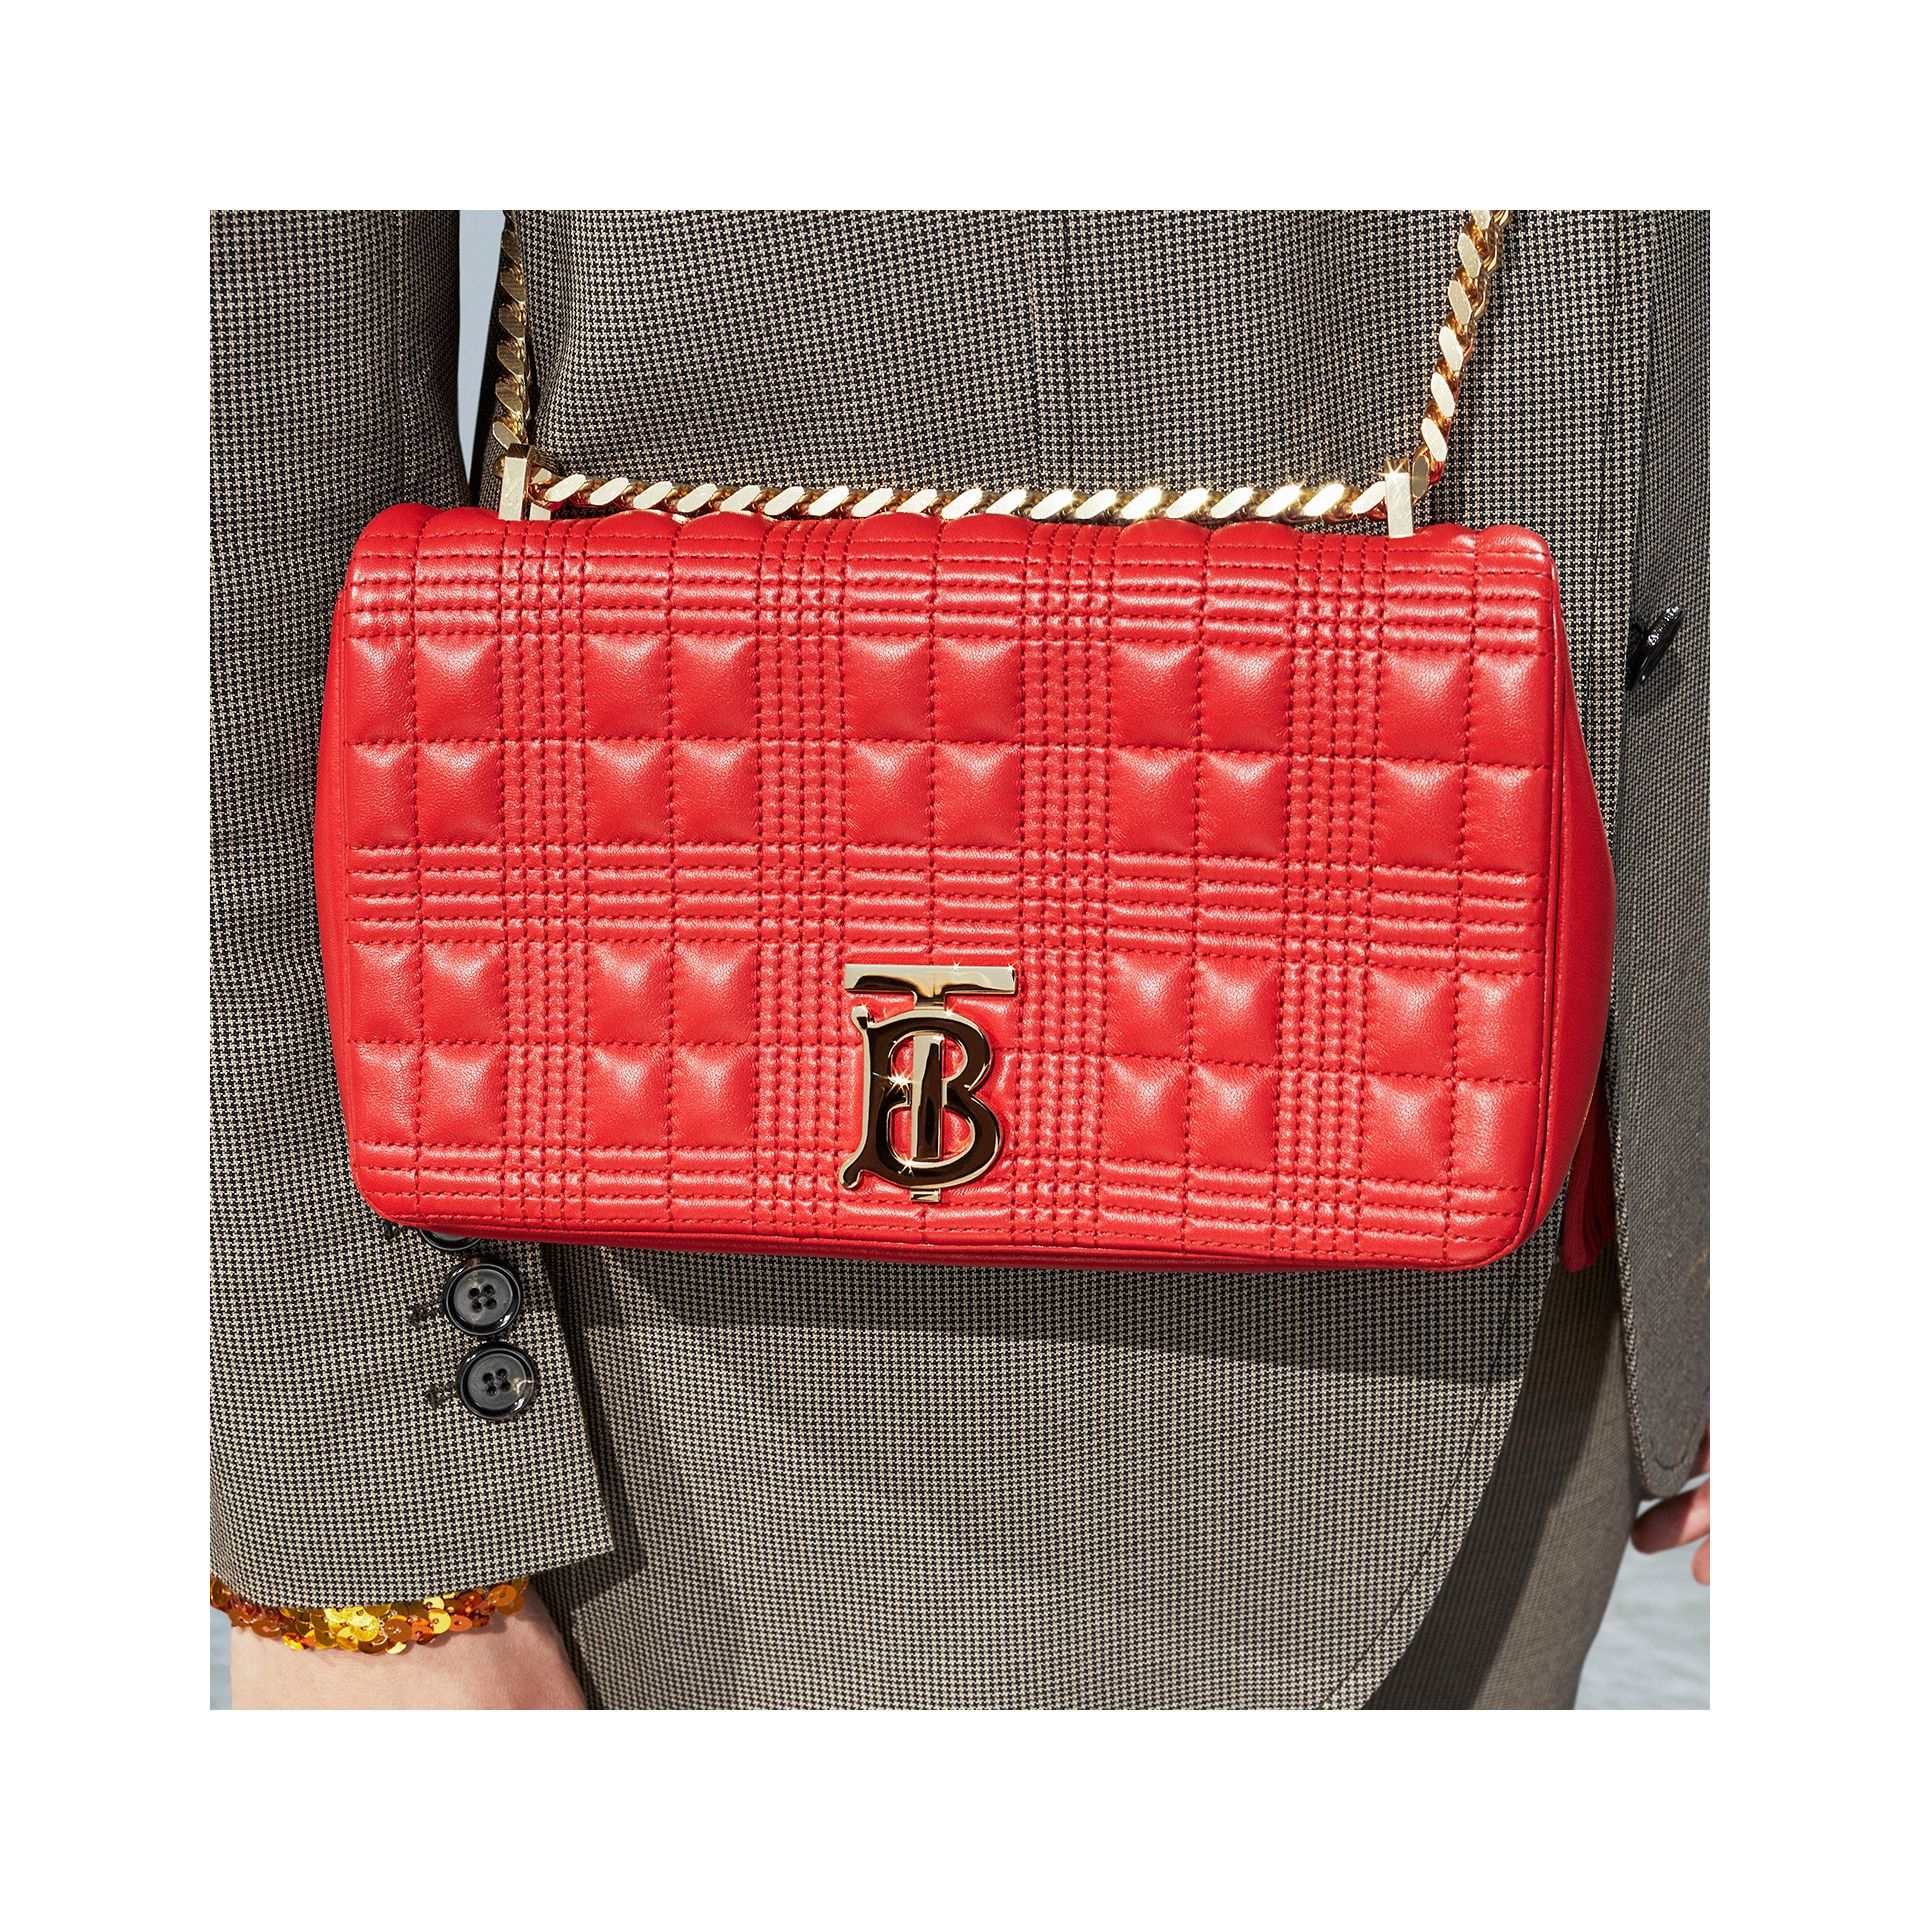 Small Quilted Check Lambskin Lola Bag in Bright Red - Women | Burberry - gallery image 1